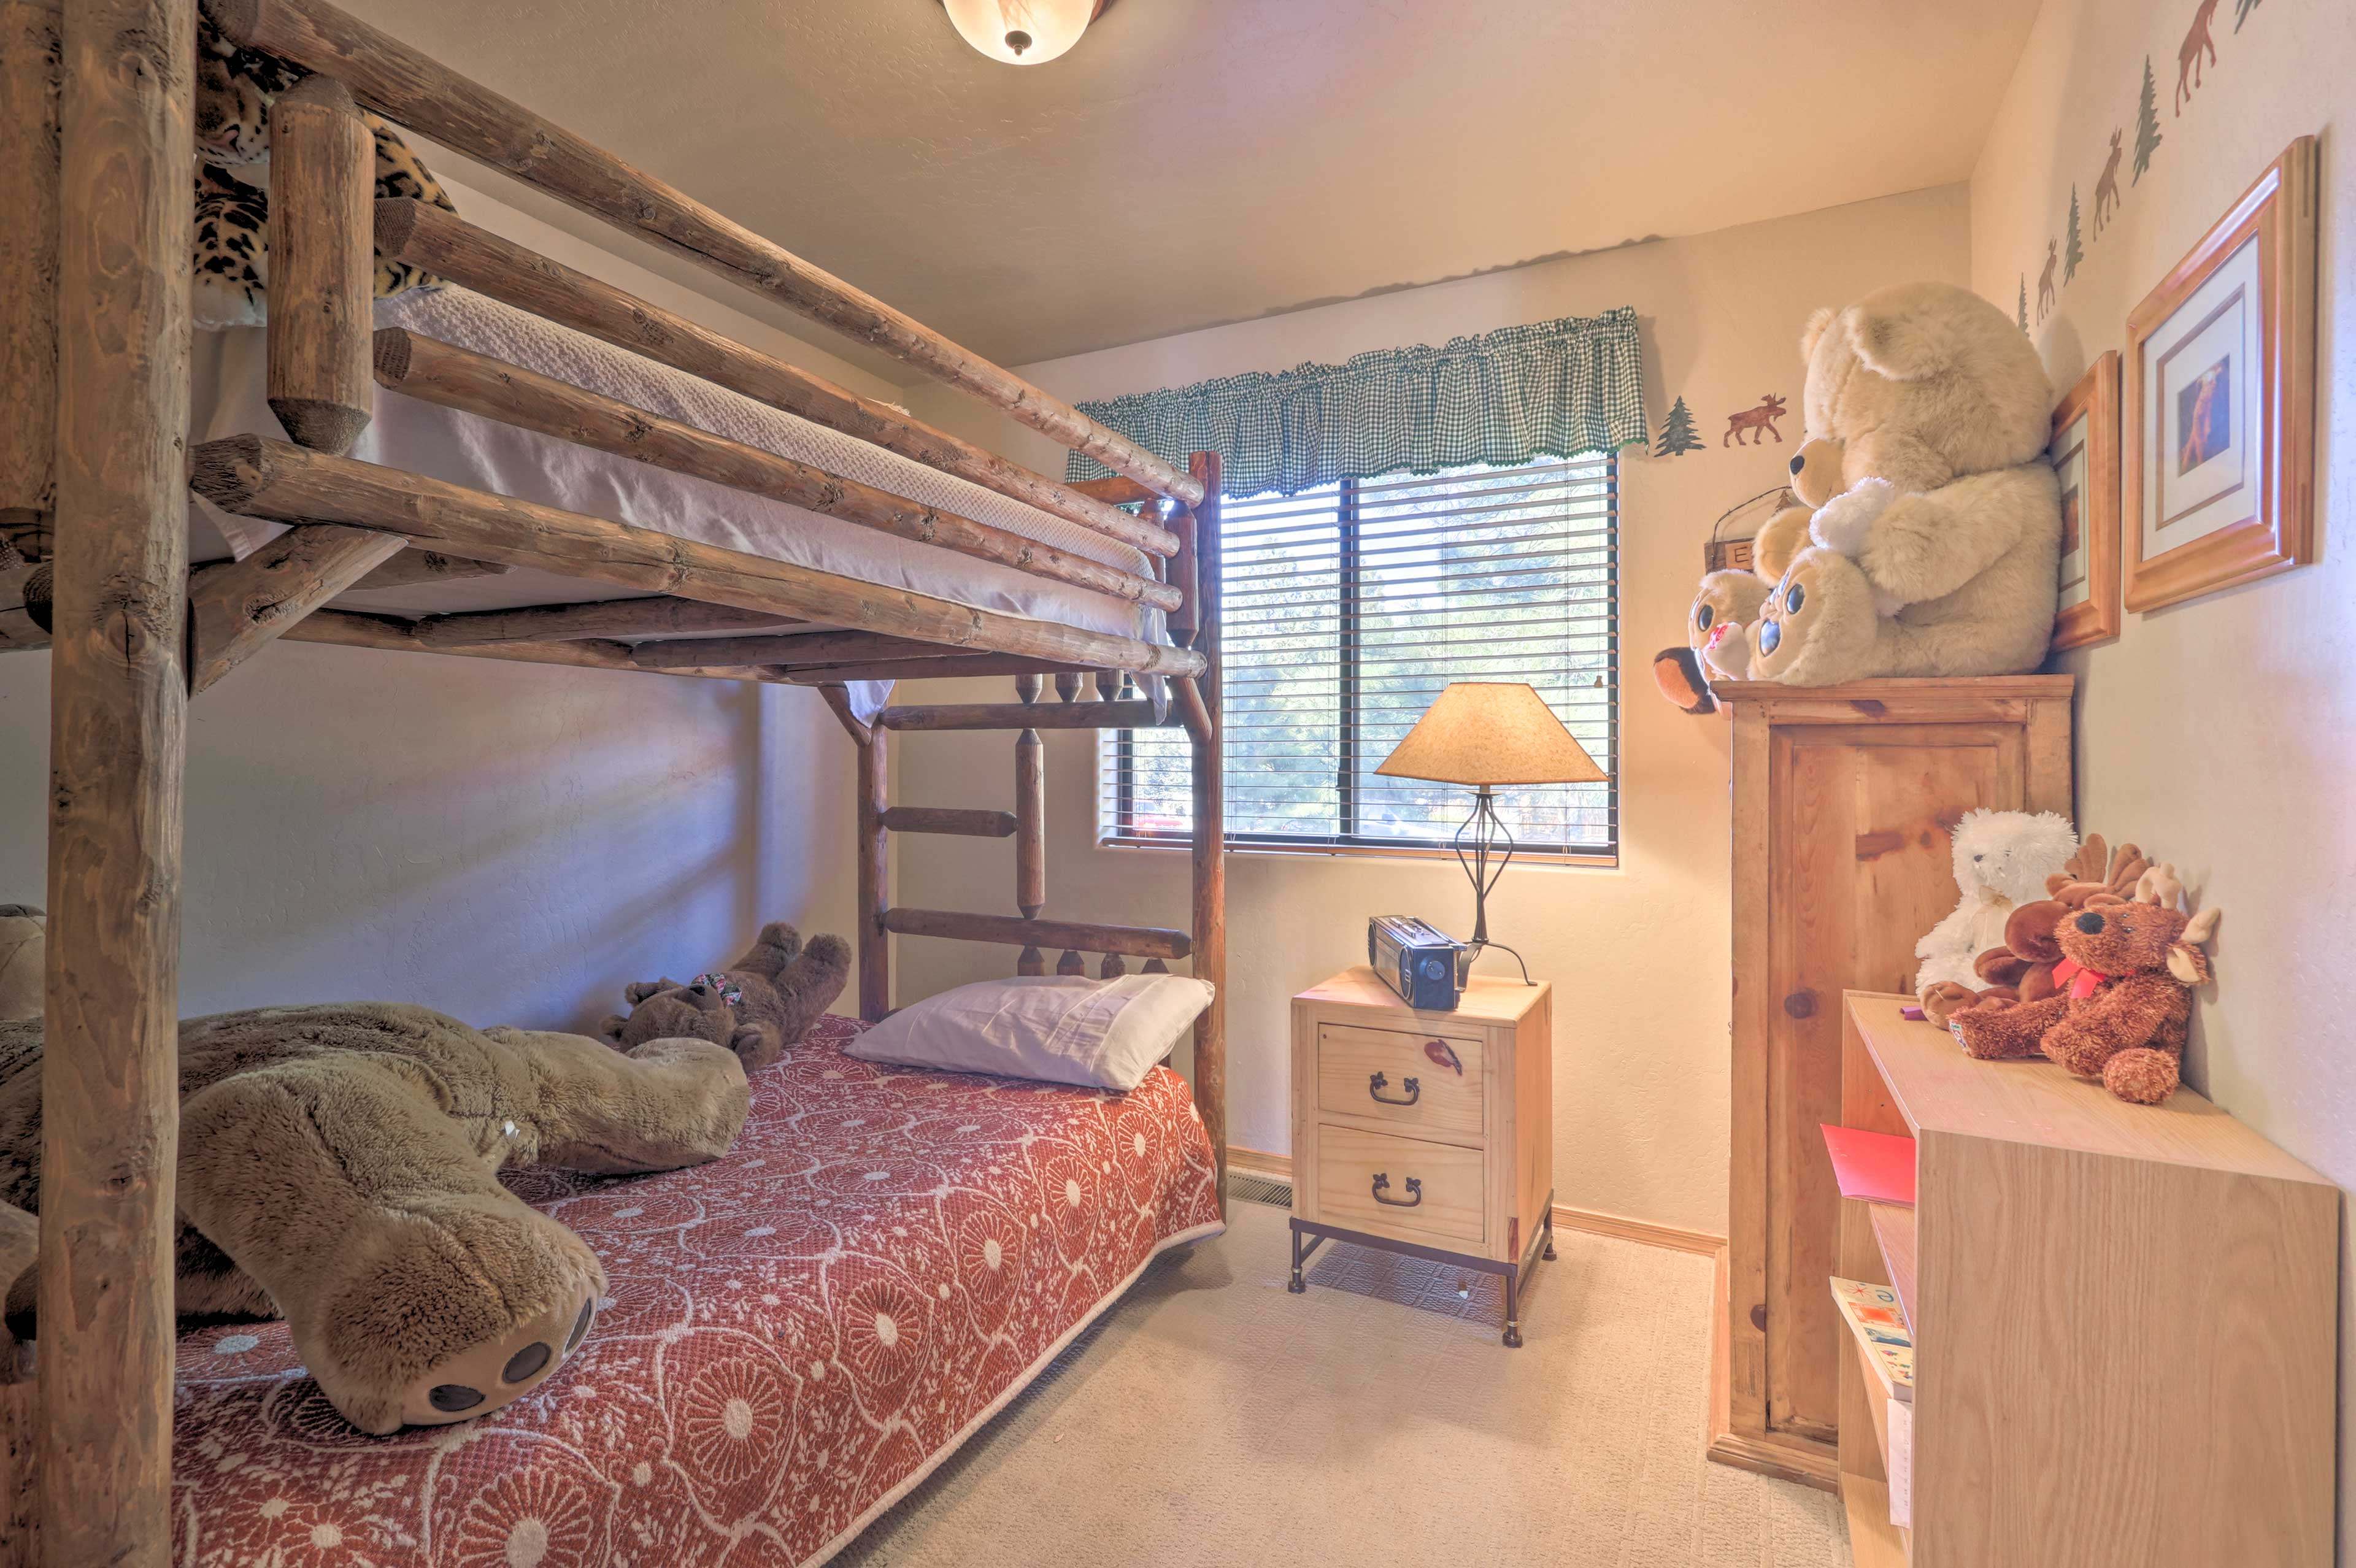 The 3rd bedroom also hosts a bunk bed.